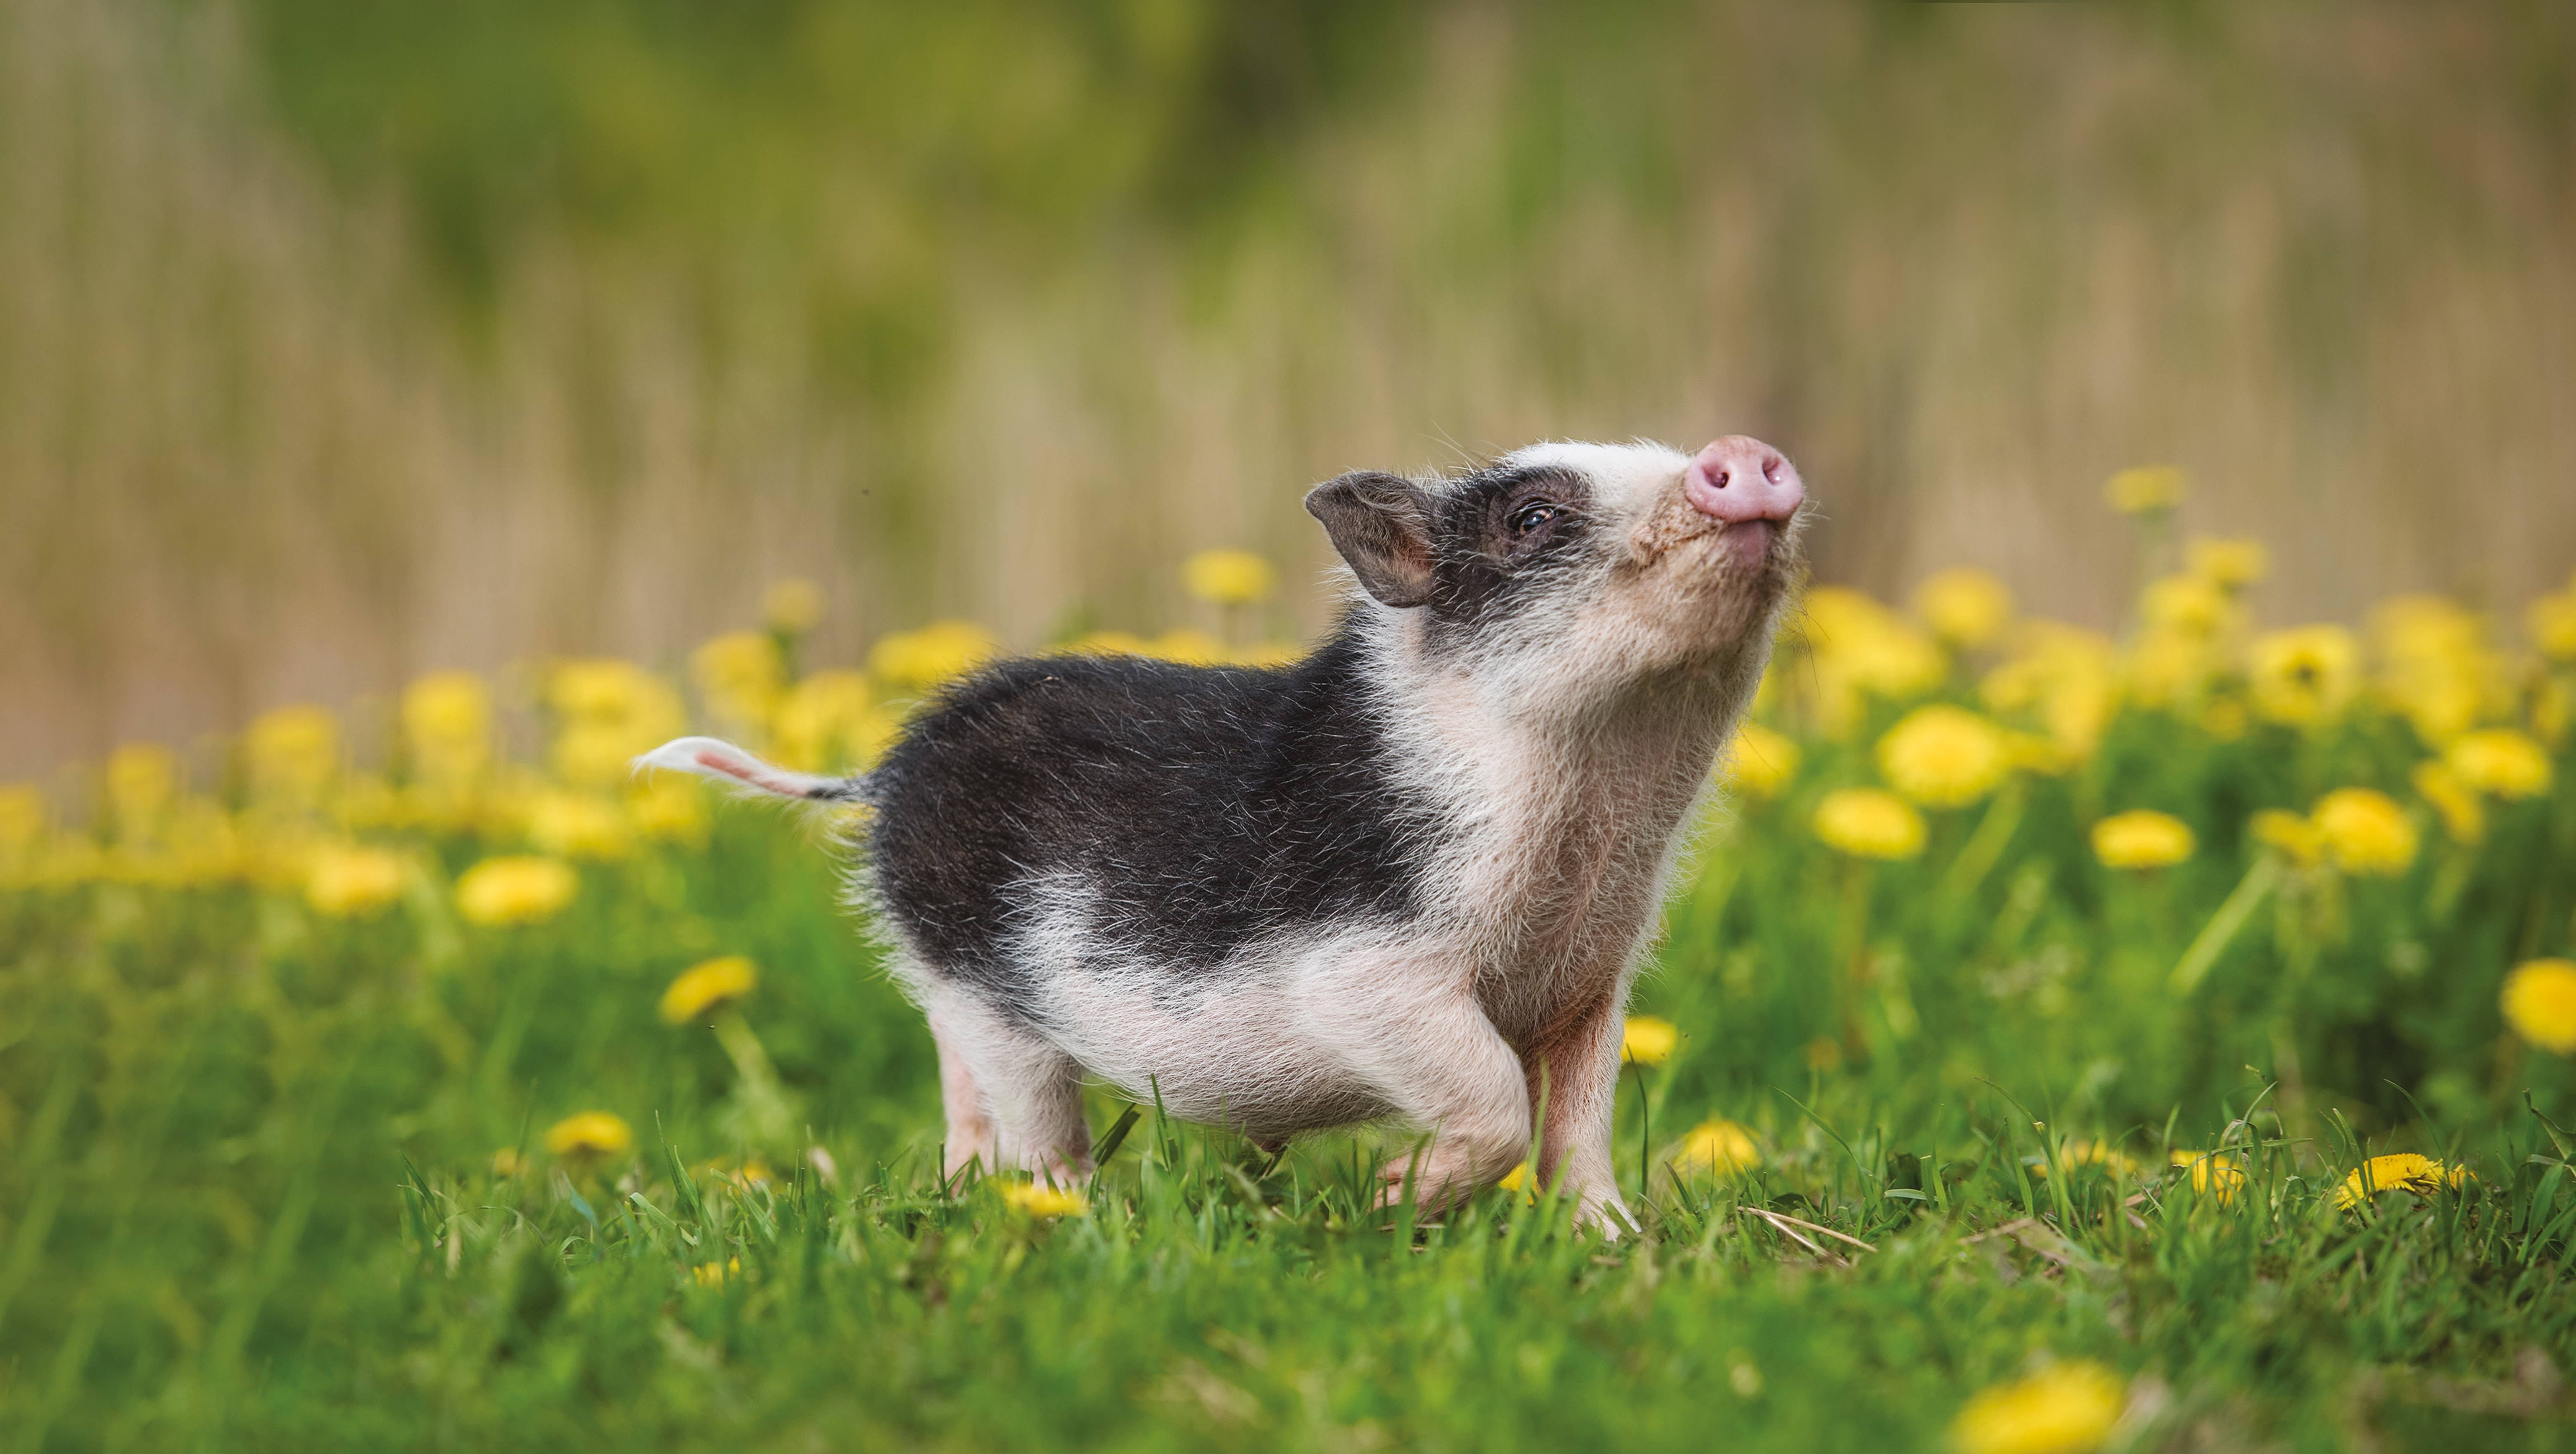 Buying A Pig In A Poke?